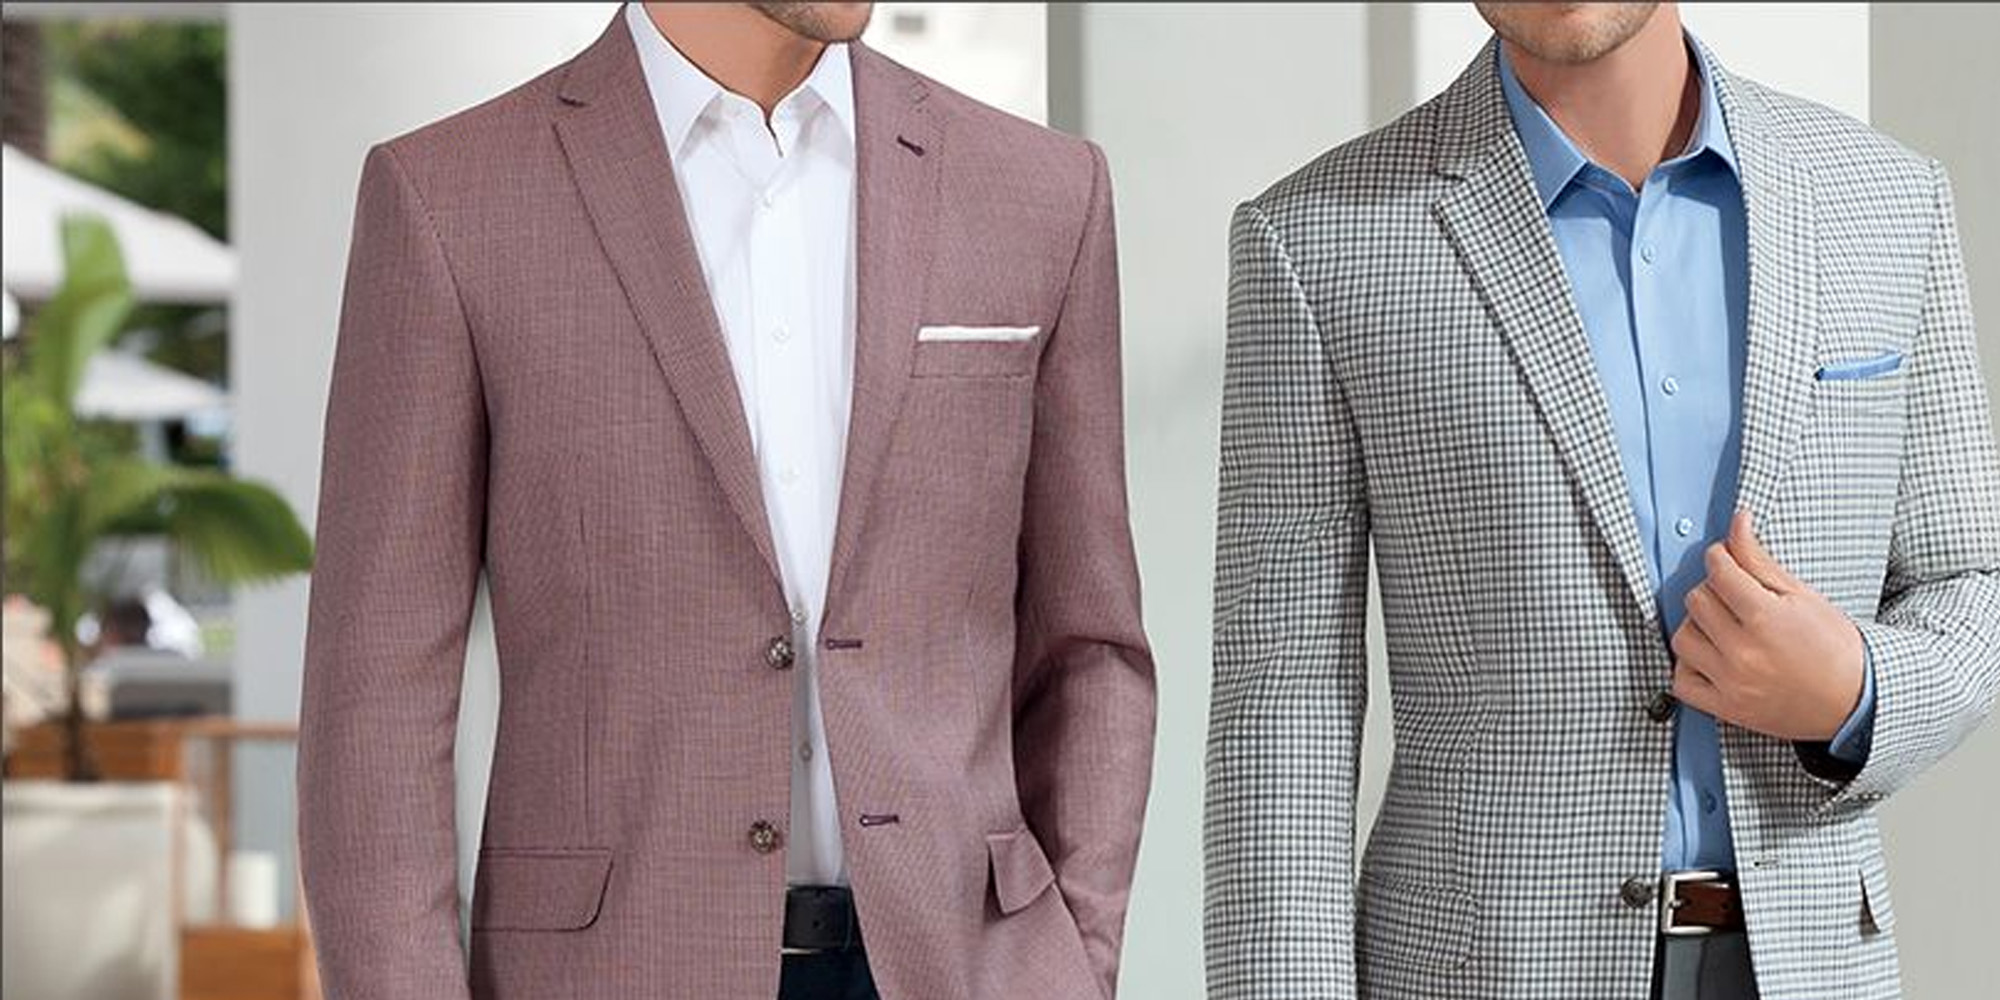 Men's Wearhouse takes up to 70% off with suits, outerwear & more from $18, today only